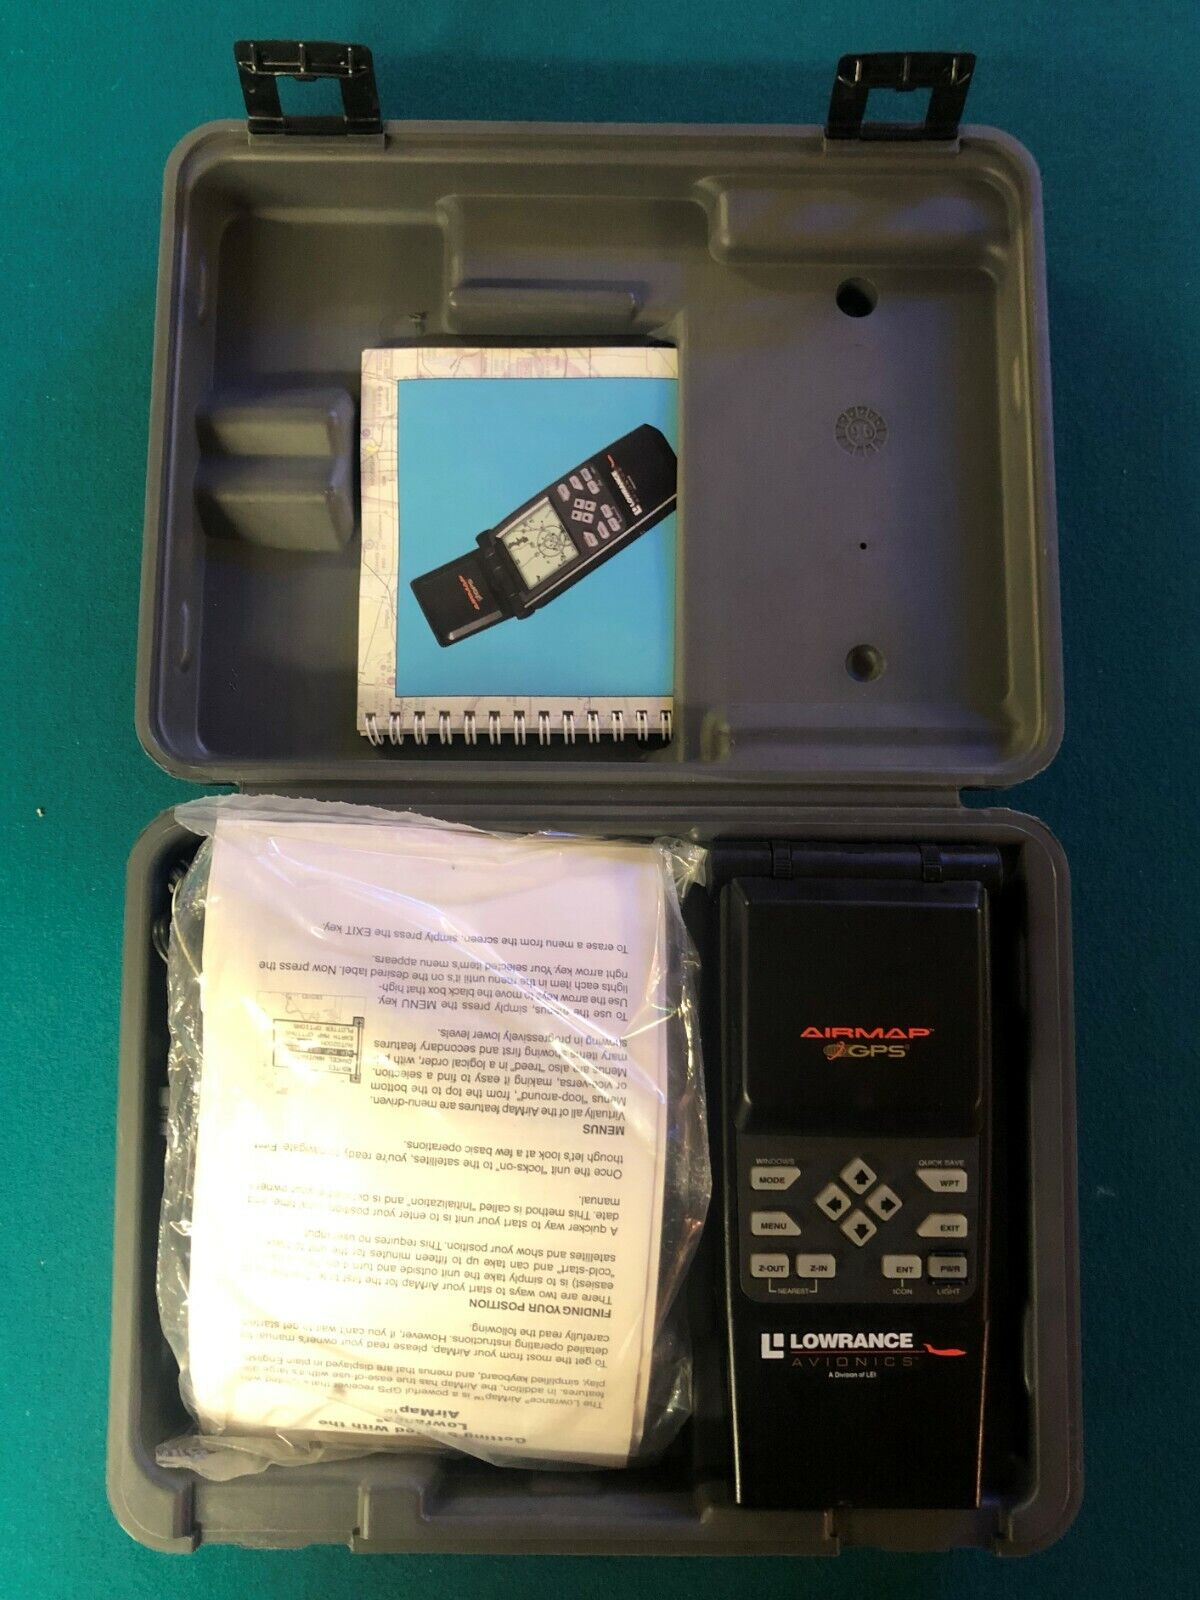 Lowrance Avionics Airmap GPS, Manual, Quick-Clamp GPS Mount, and Case, New